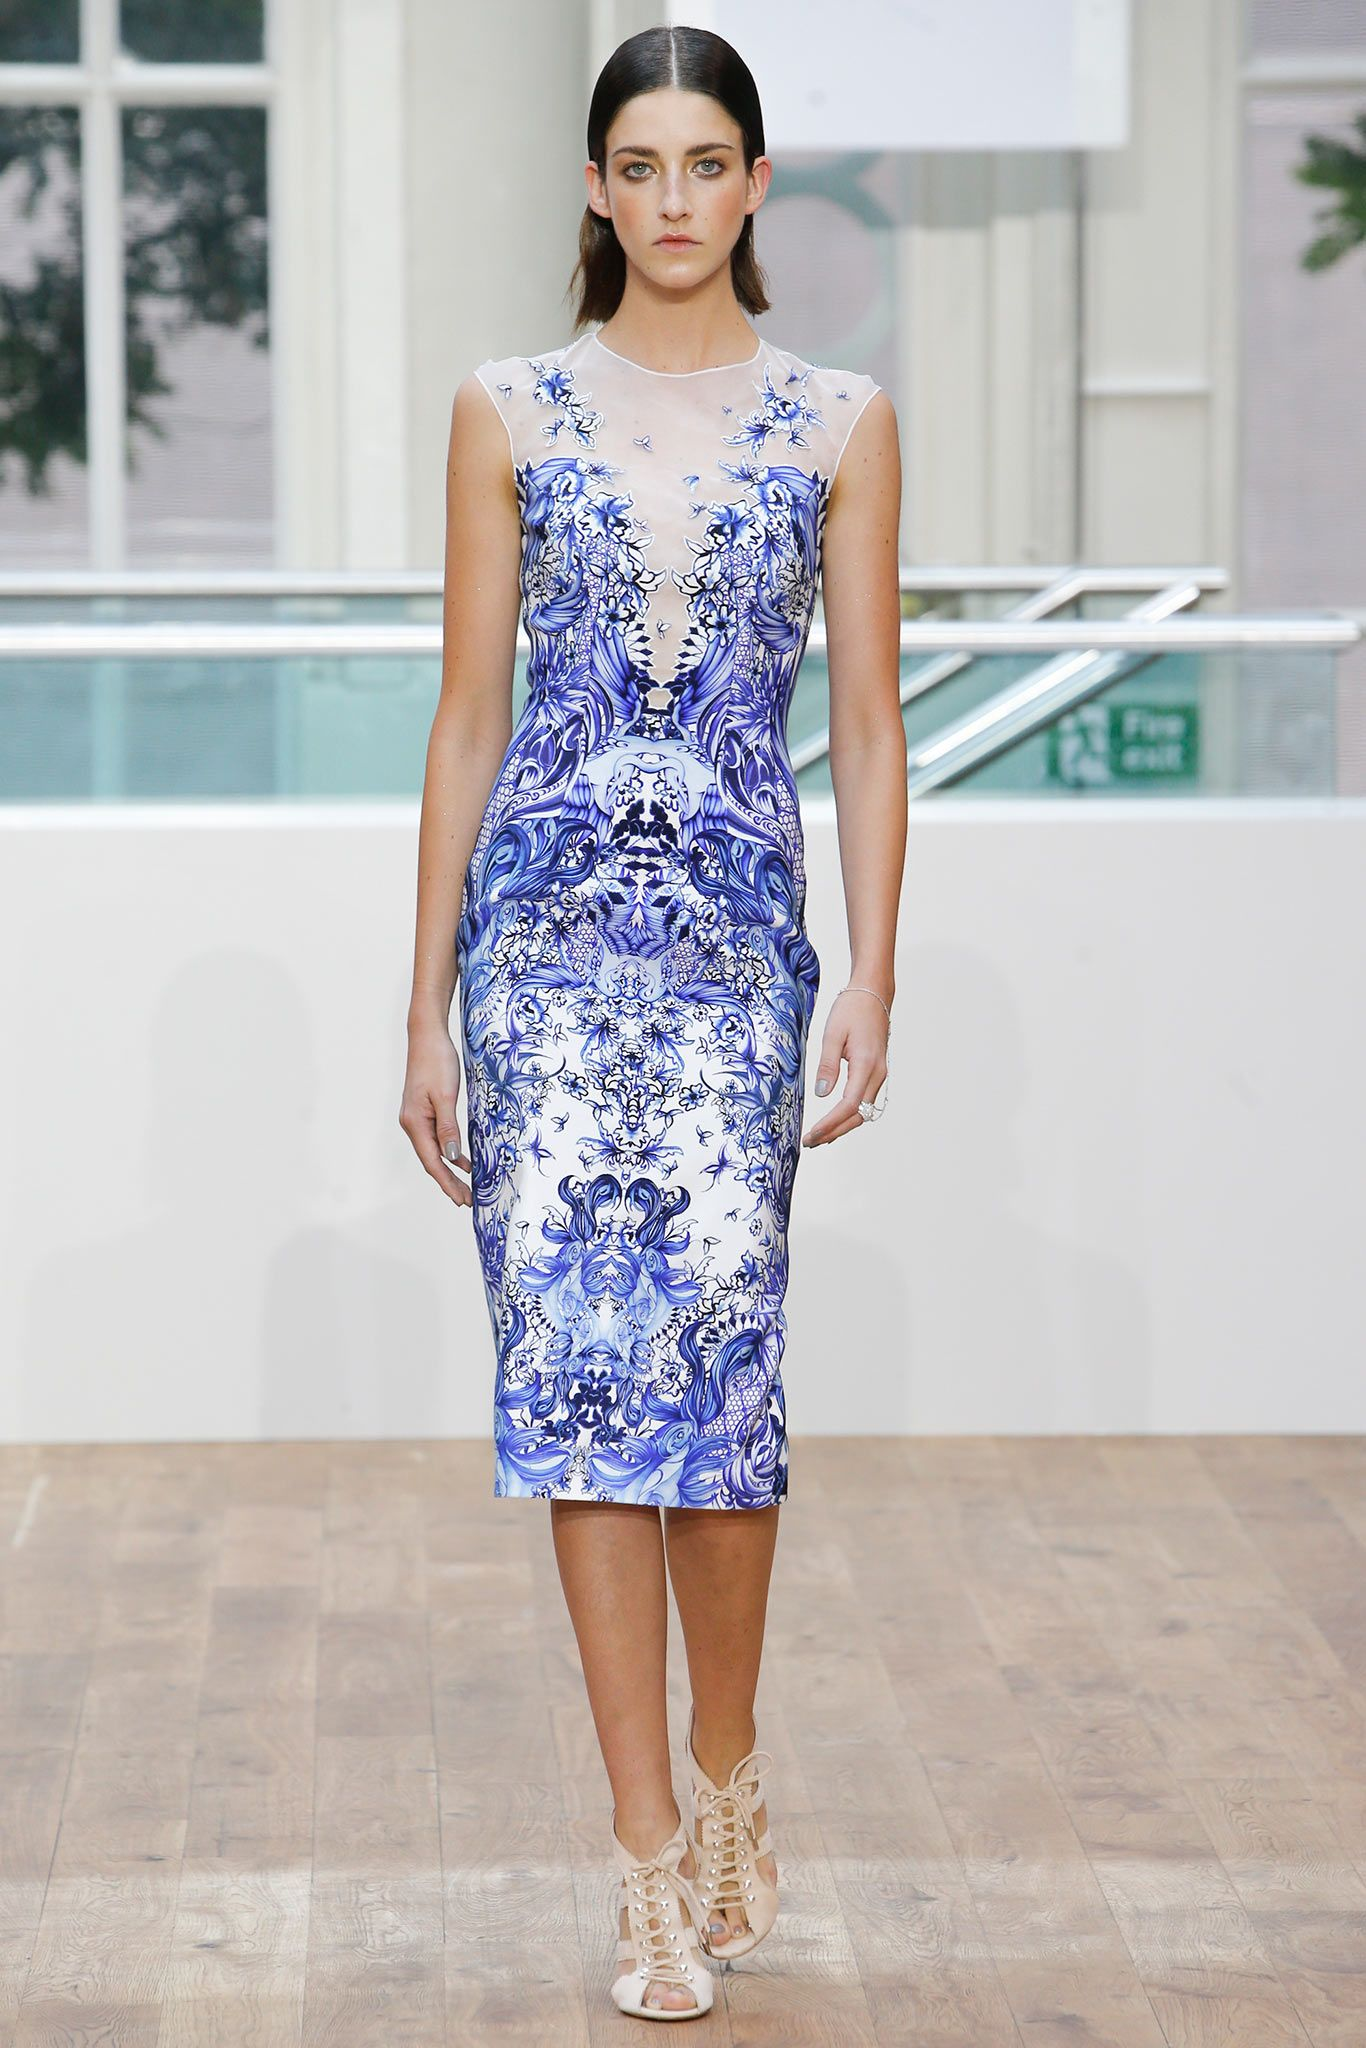 Julien Macdonald Spring 2015 RTW - this blue and white phoenix pattern is a magical place. I'd use this print on a ballet costume. Not sure I'd wear it as street fashion.